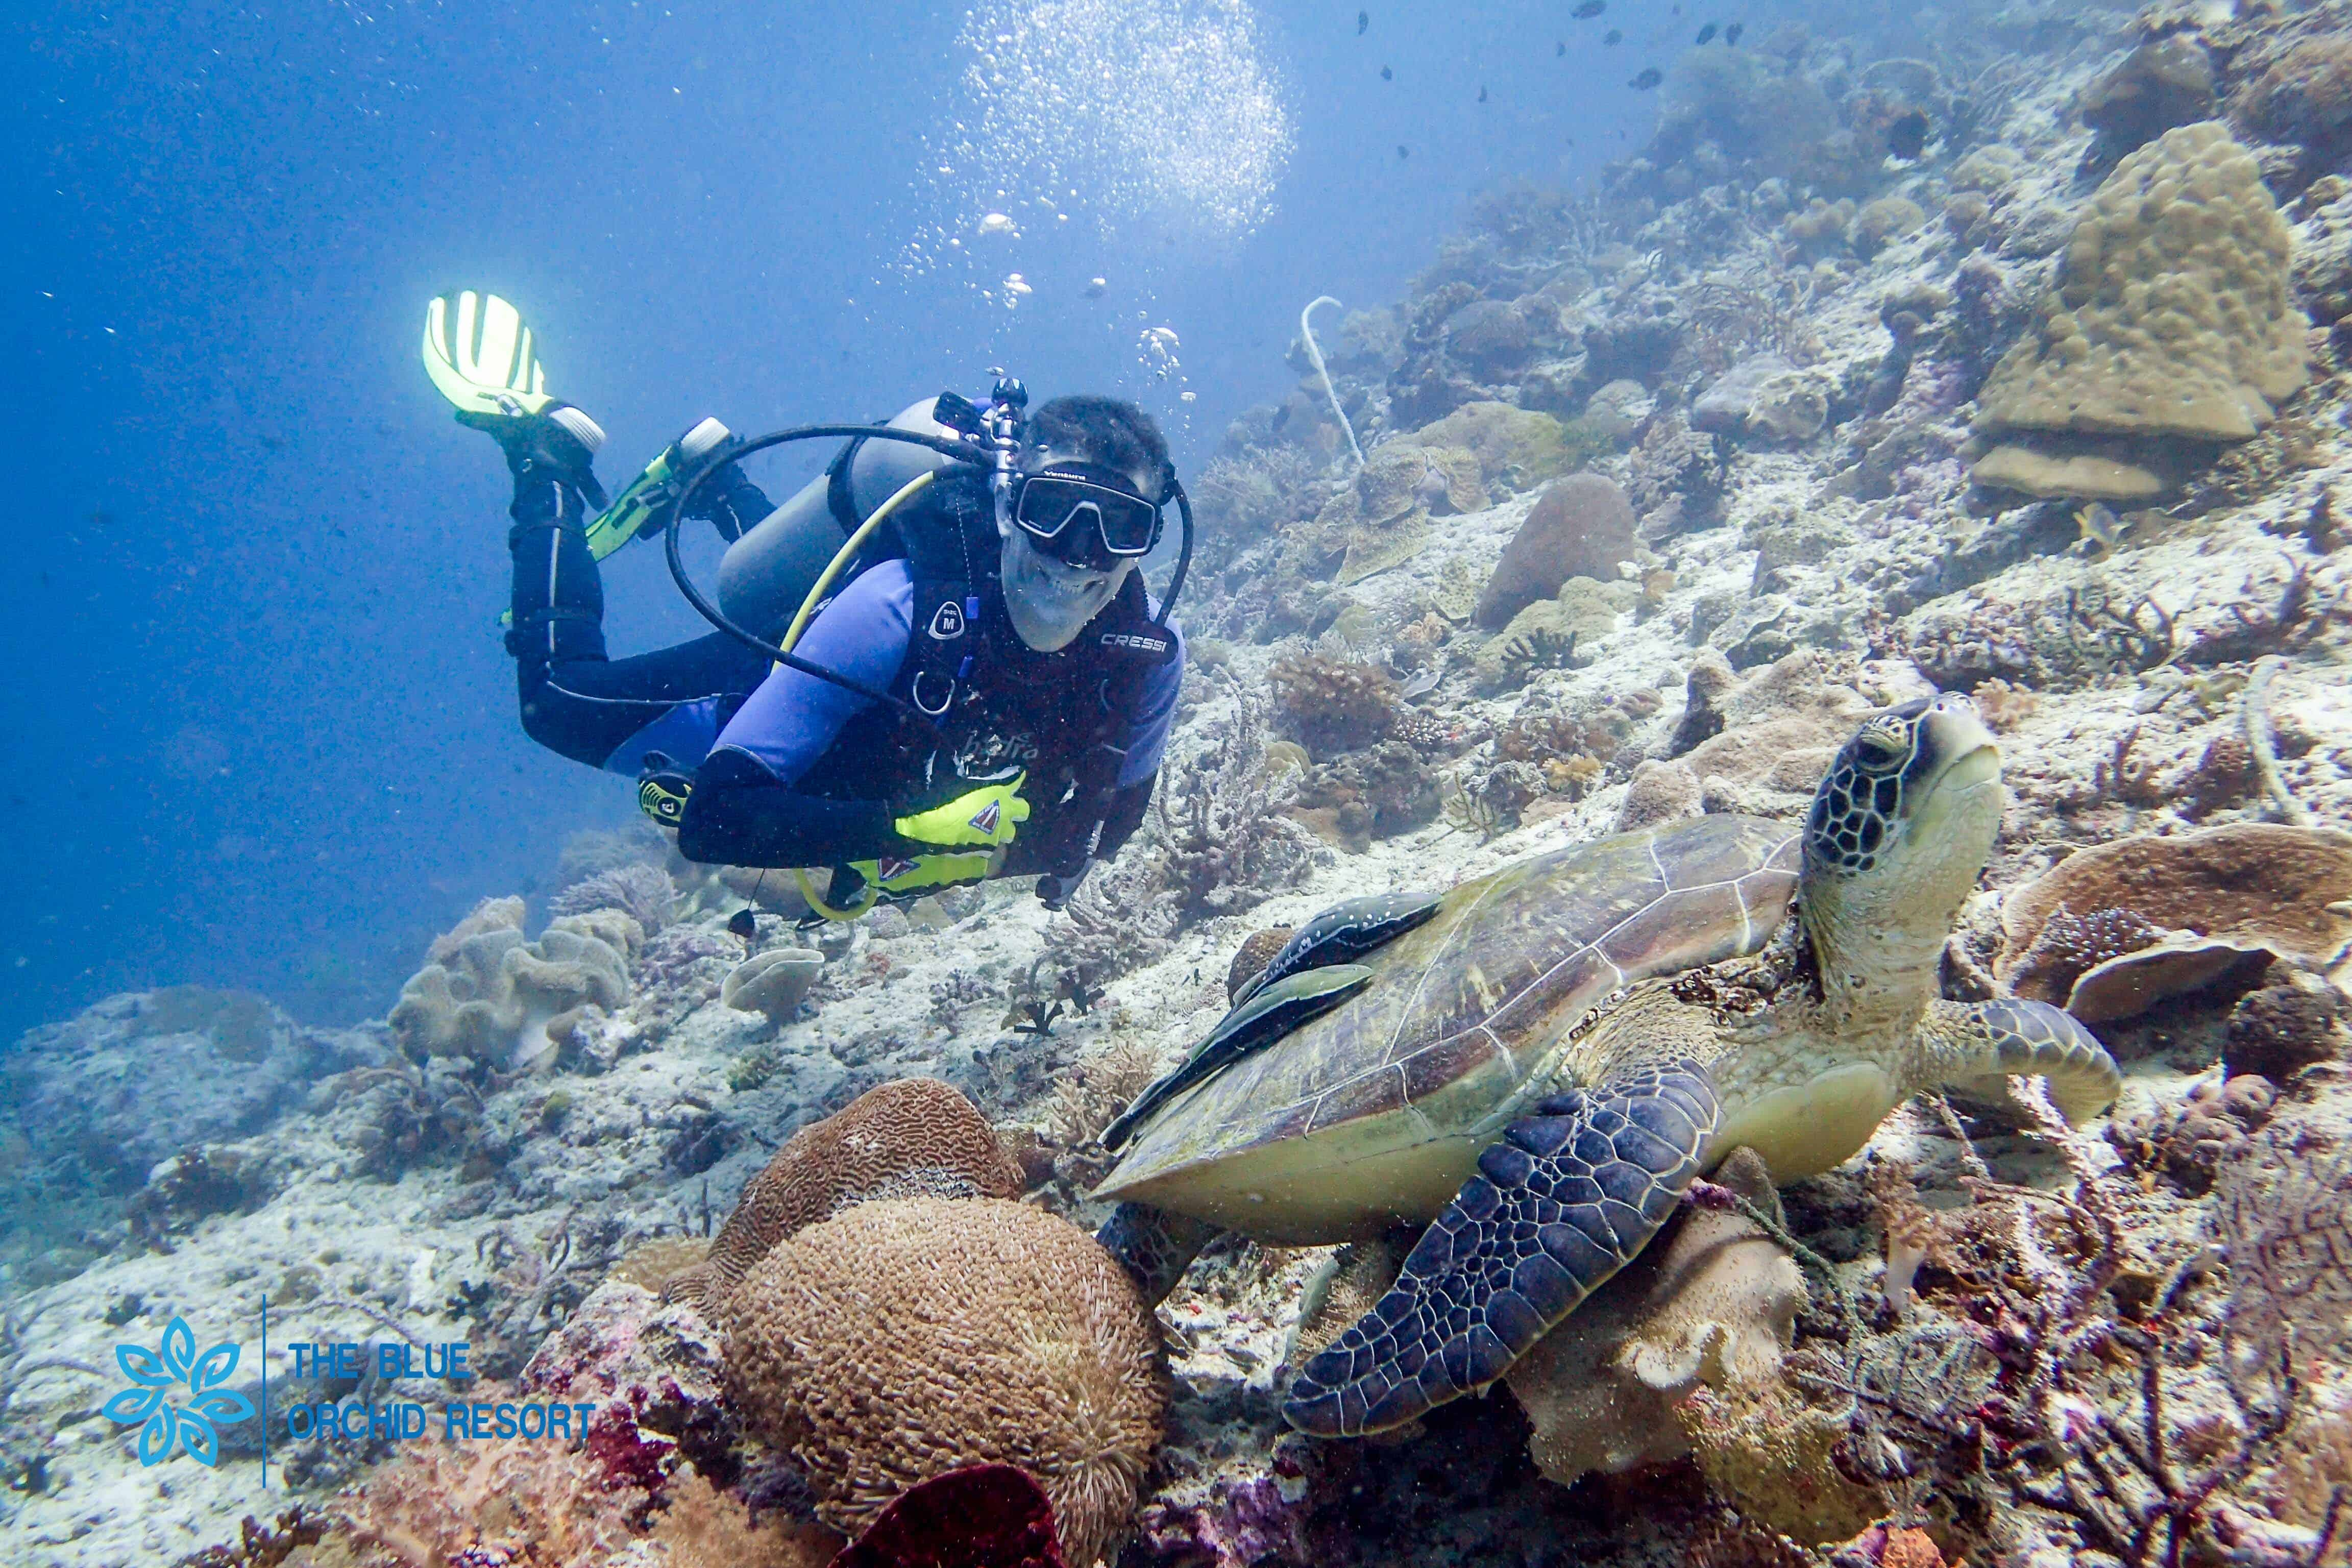 d4b26ed46 Discover the best diving in Moalboal with the Blue Orchid Resort and Dive  Center